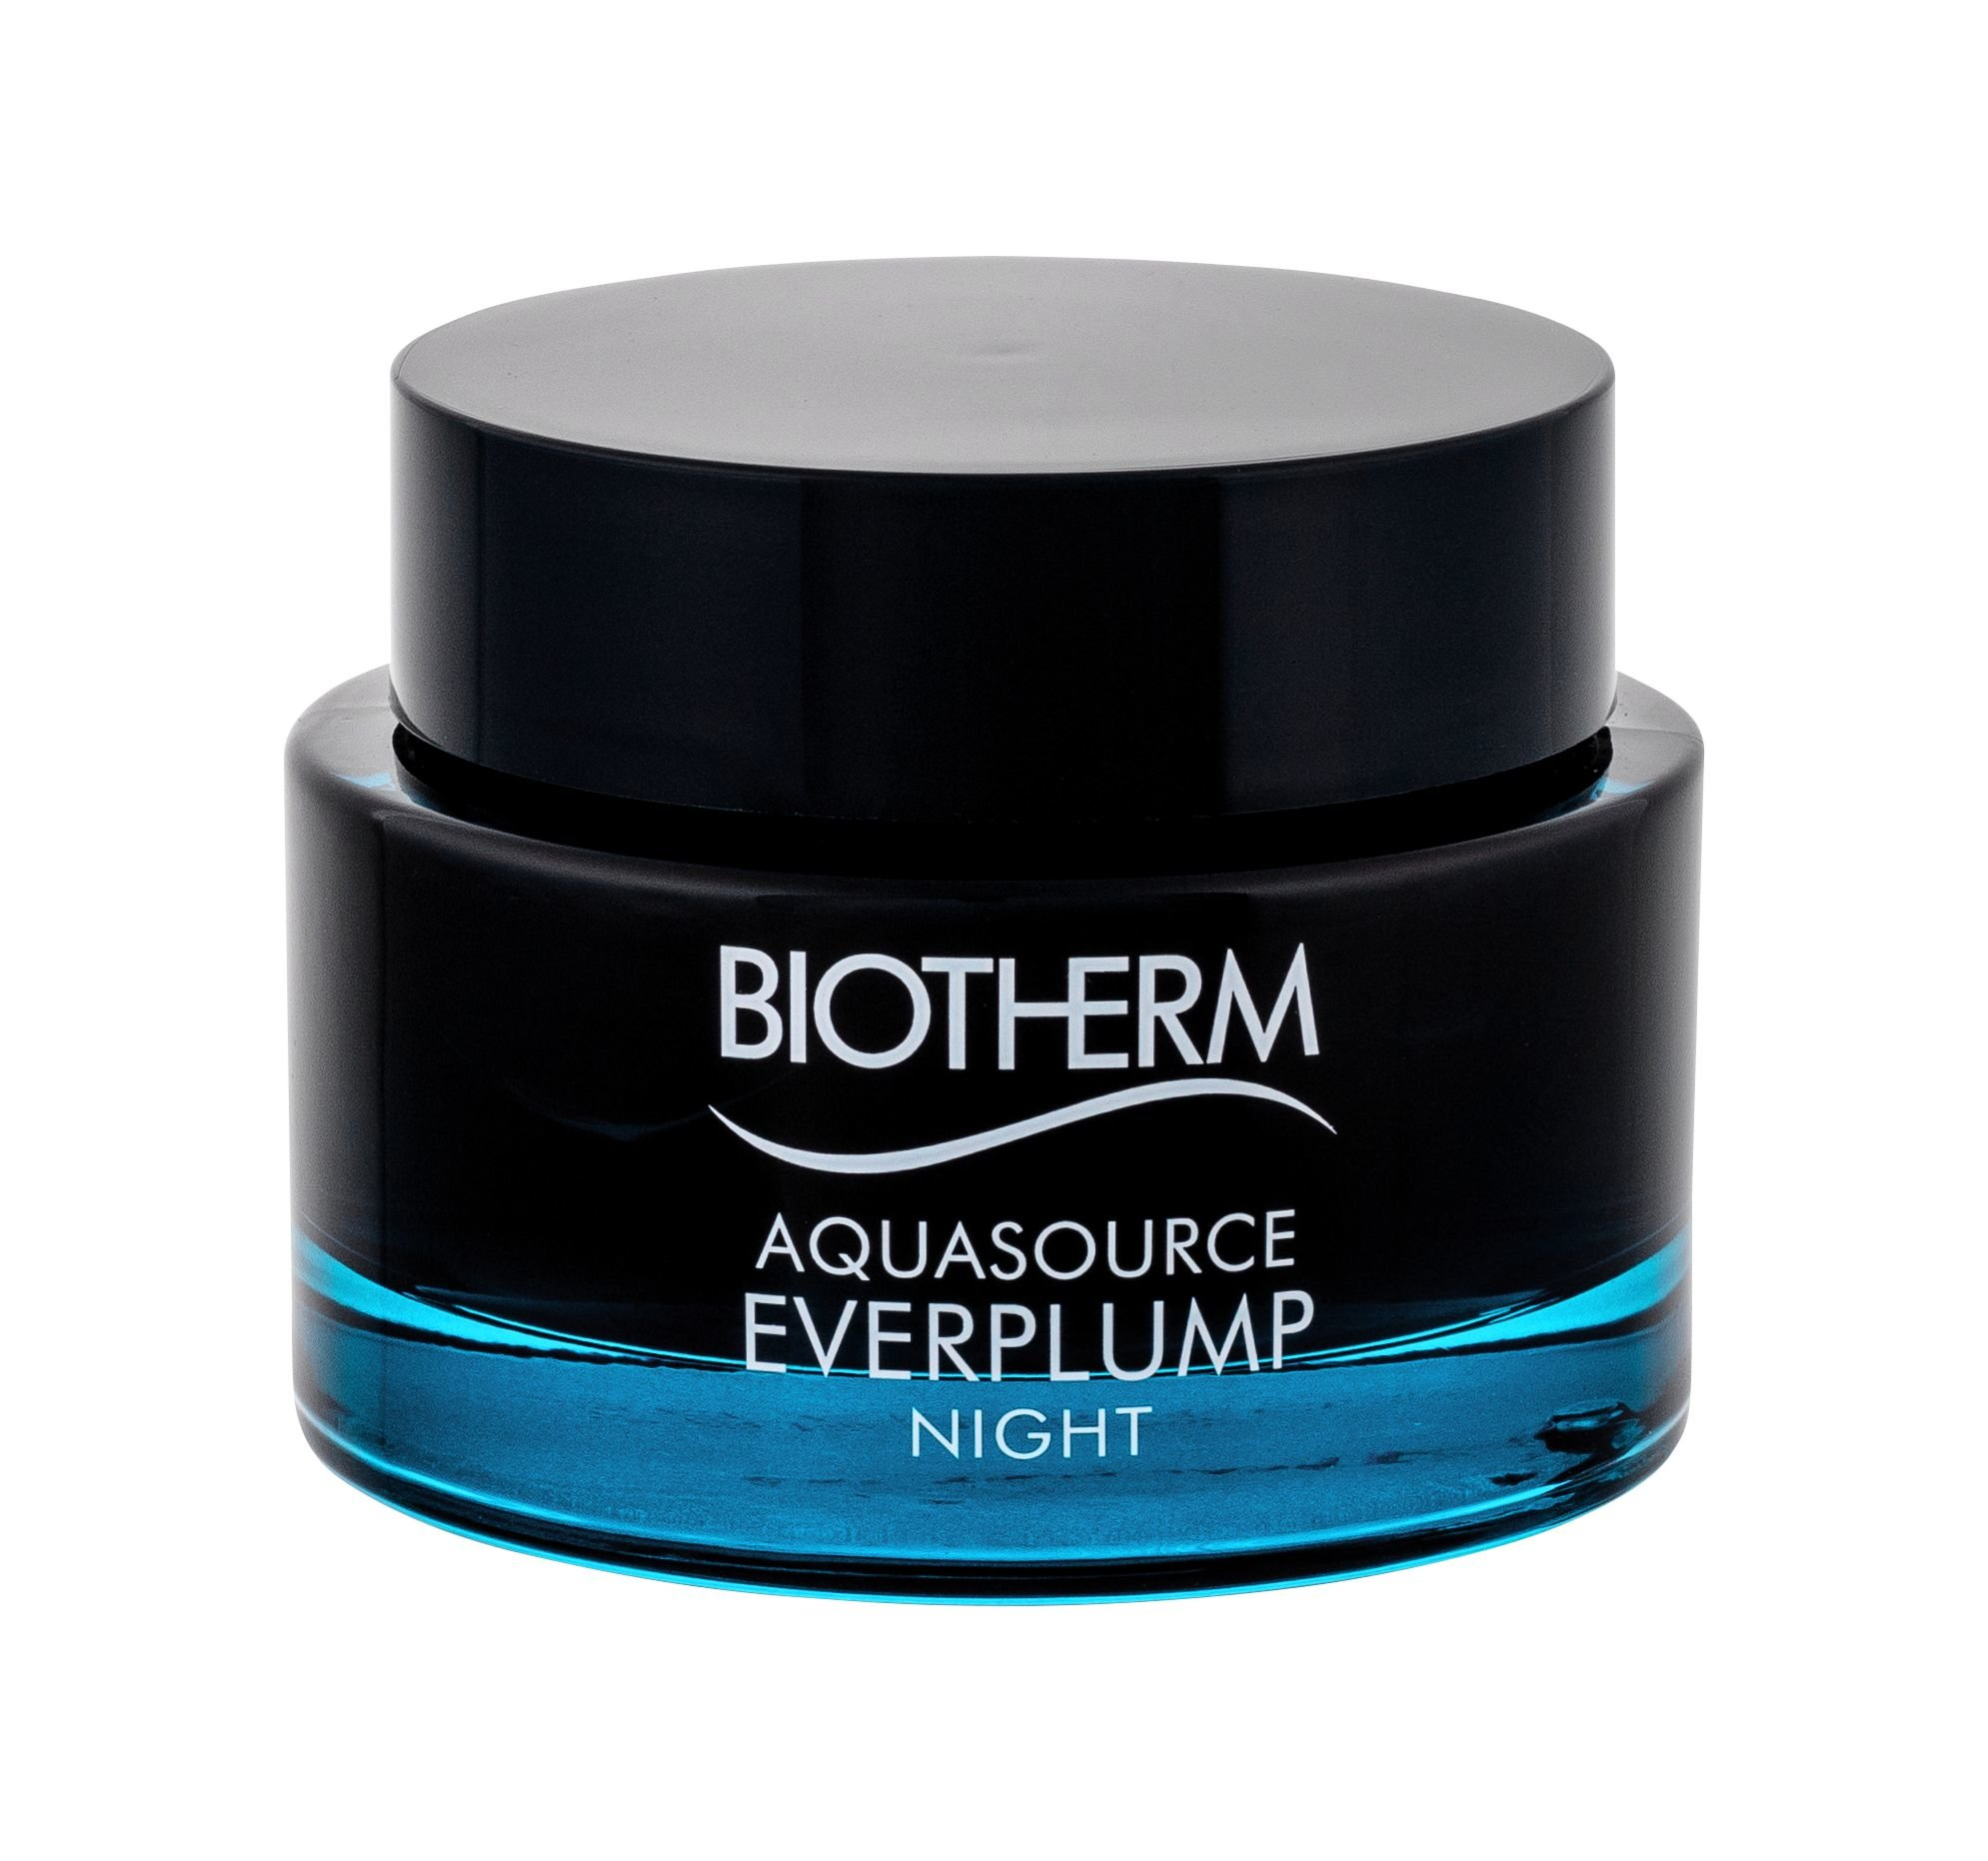 Biotherm Aquasource Face Mask 75ml  Everplump